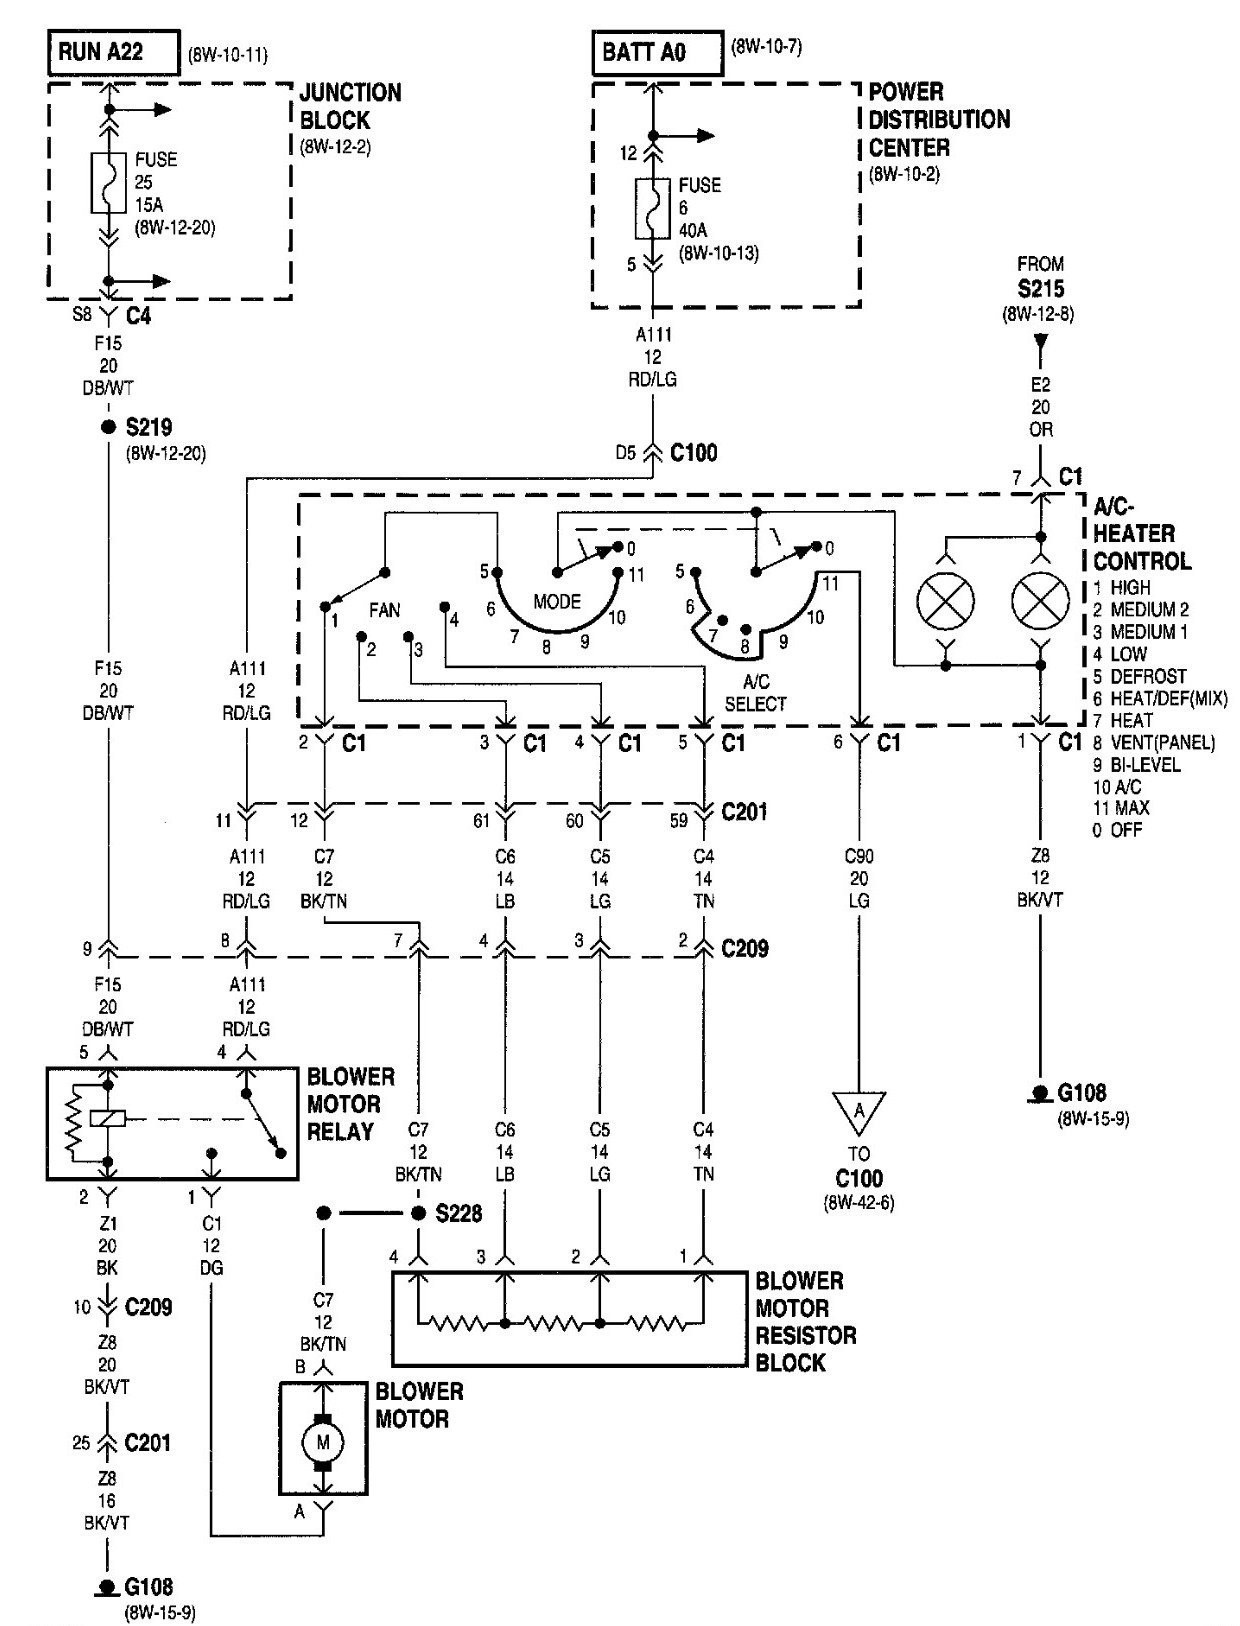 Jeep ignition wiring diagrams wiring library 2000 jeep grand cherokee wiring diagram inspirational jeep grand cherokee